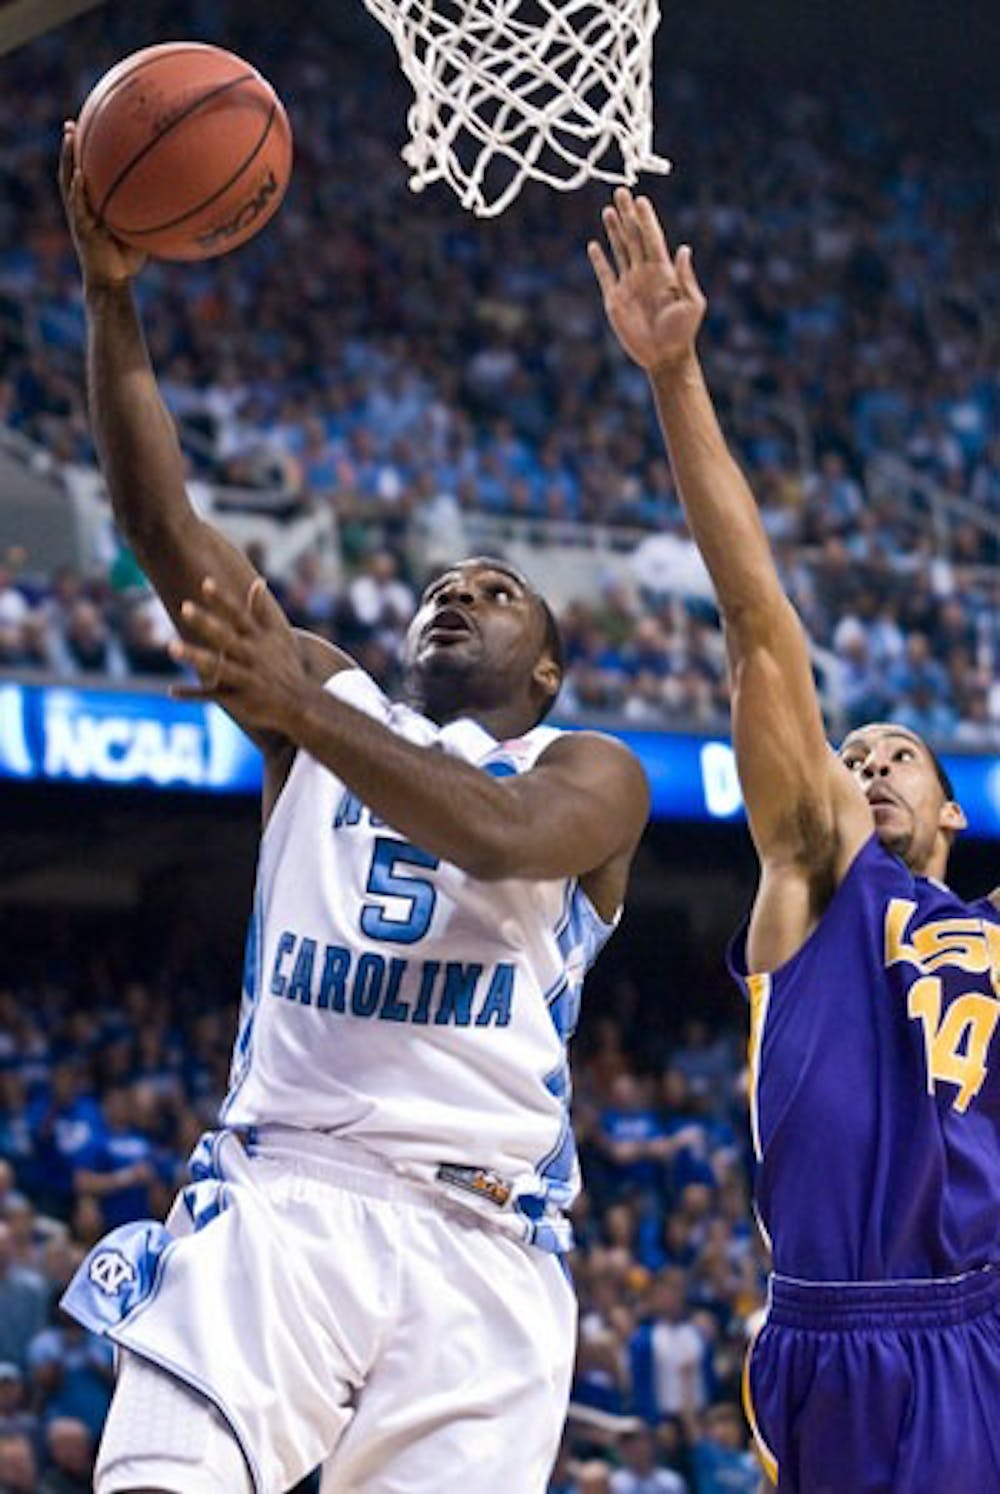 "North Carolina junior Ty Lawson returned from a toe injury to start UNC?s Saturday matchup with LSU. Though Lawson struggled in the first half"" recording only two points he caught fire in the second period and led a 17-2 UNC run that sealed the victory for the Tar Heels."